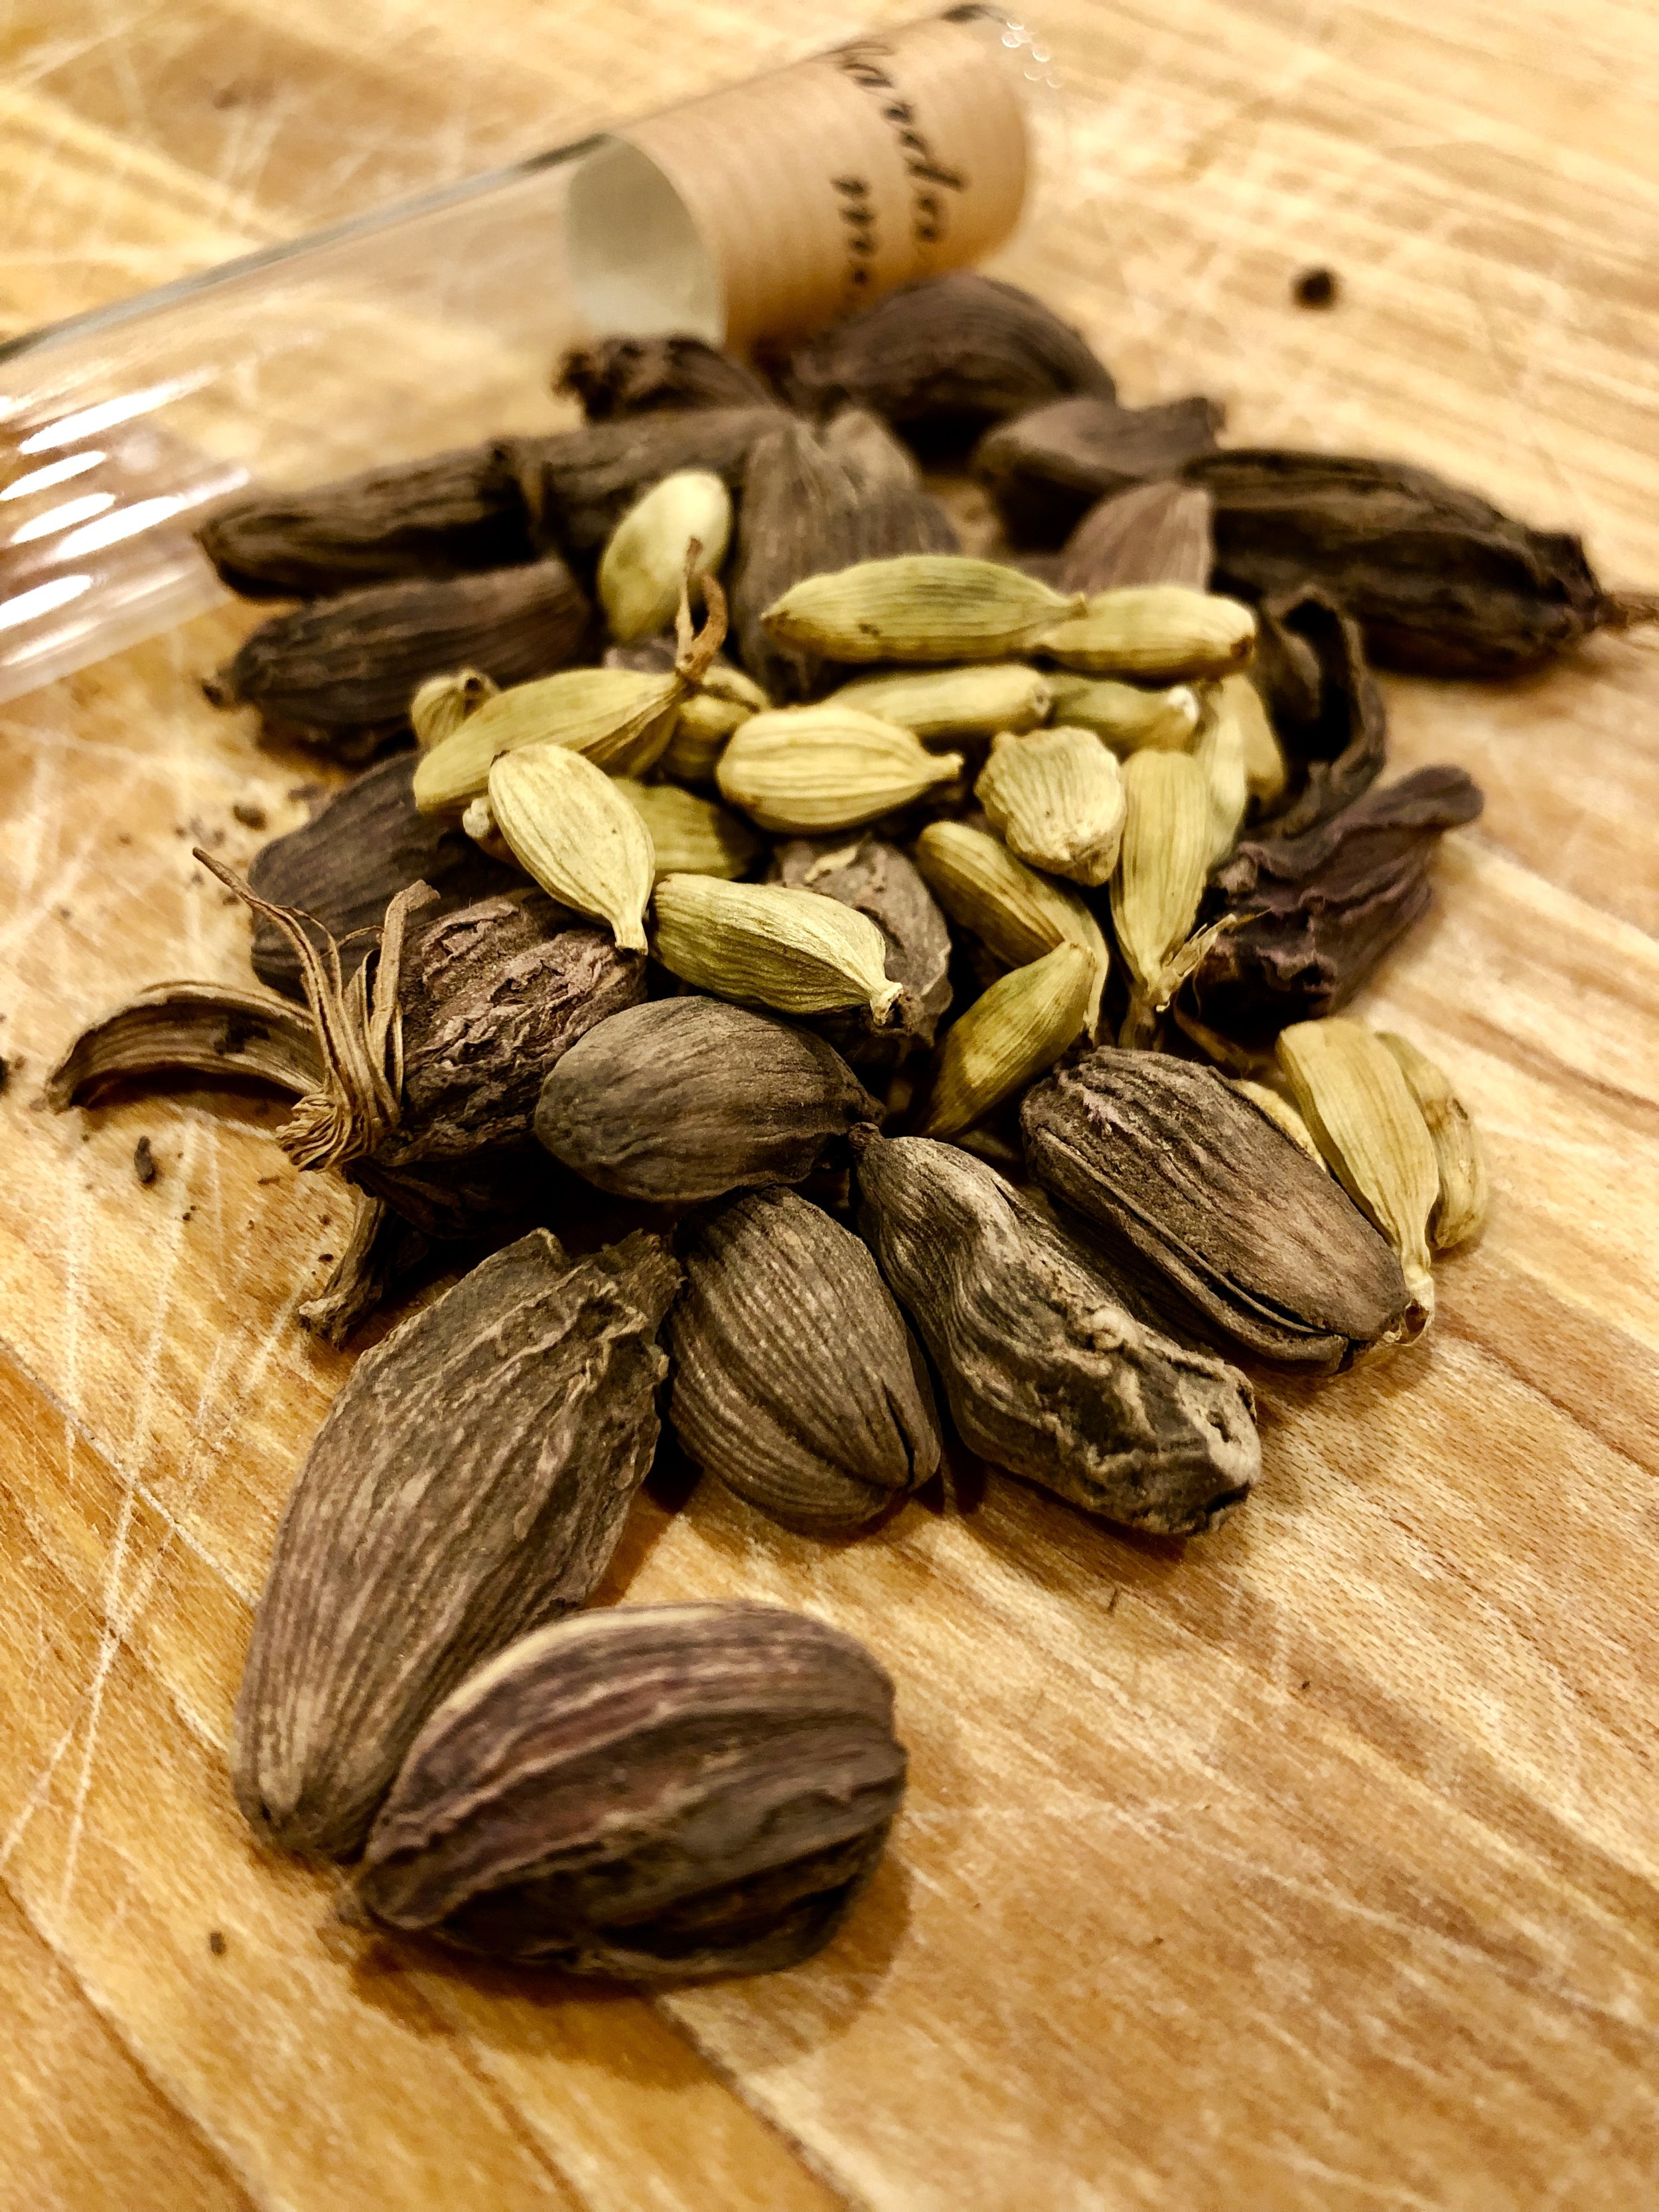 Cardamom is Queen: The Surprising Swedish Spice    This week, The Feast looks at the surprising history of Sweden's favorite spice: cardamom! From its origins in India and the Middle East, how did this unlikely seed pod make its way to the chilly climes of Scandinavia? We break down how cardamom became the flavor backbone in Swedish favorites such as mulled wine (or glögg), flavored coffee, and Christmas sweet bread. Talking with everyone from culinary archaeologists to Swedish-Canadian grandmothers, we'll uncover the unlikely history of this millenia-old spice!   Show Notes    Listen Now!